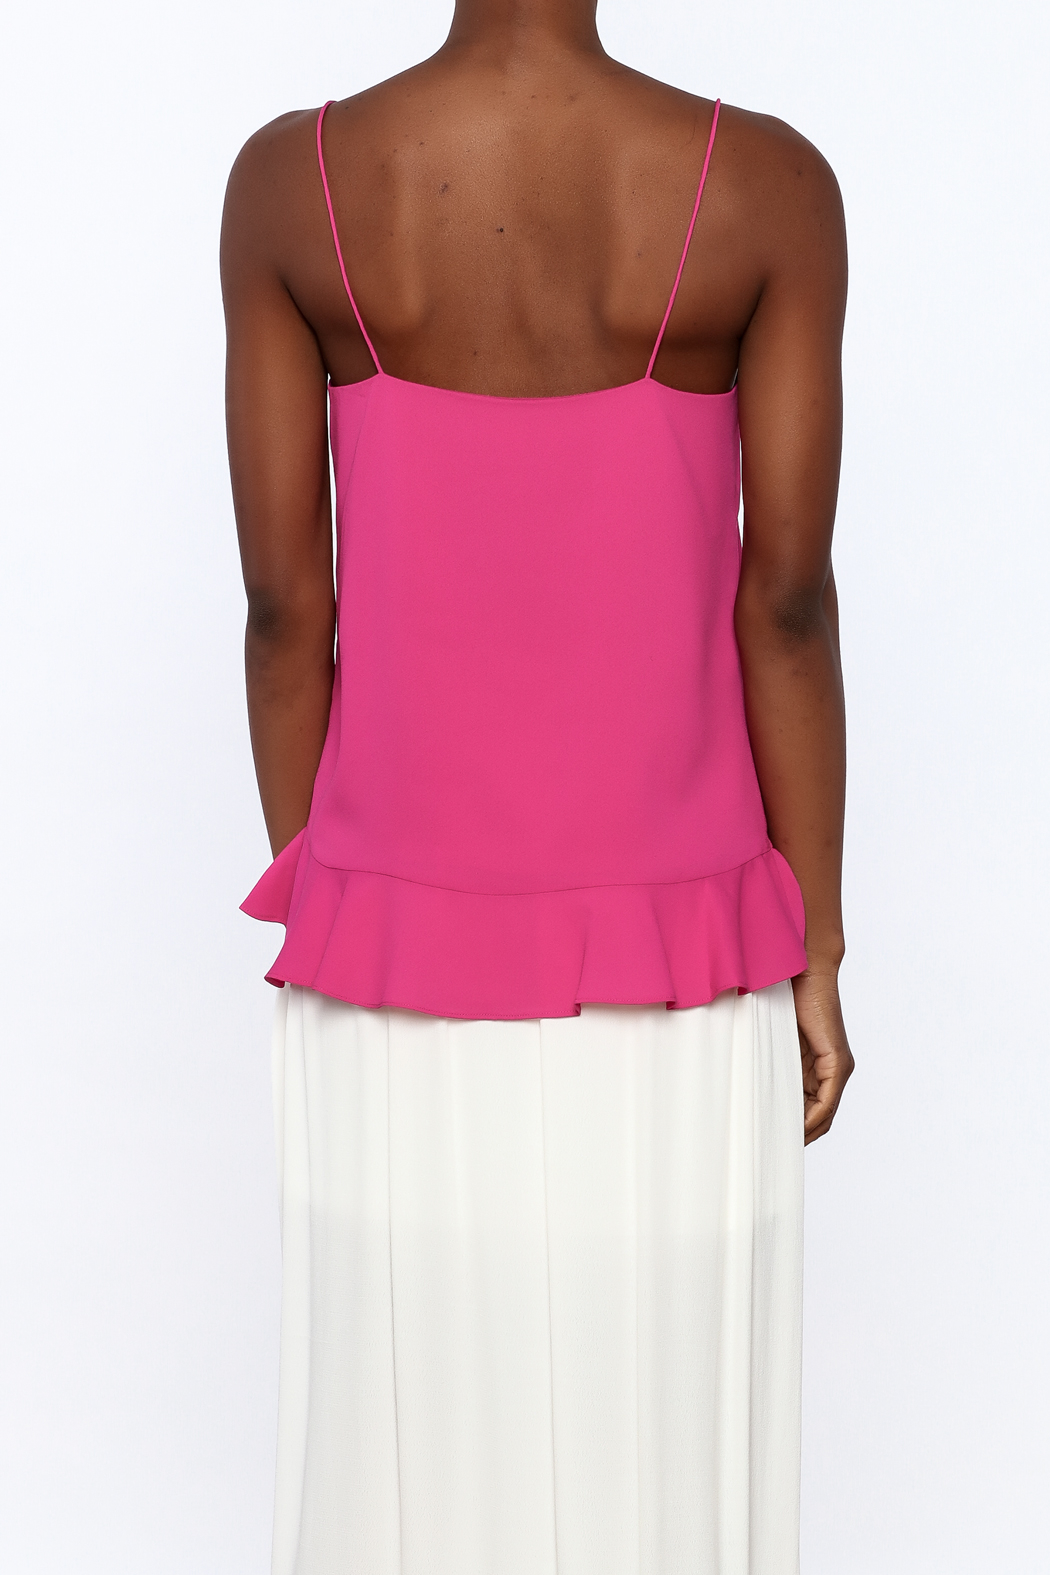 Cooper & Ella Hot Pink Sleeveless Top - Back Cropped Image